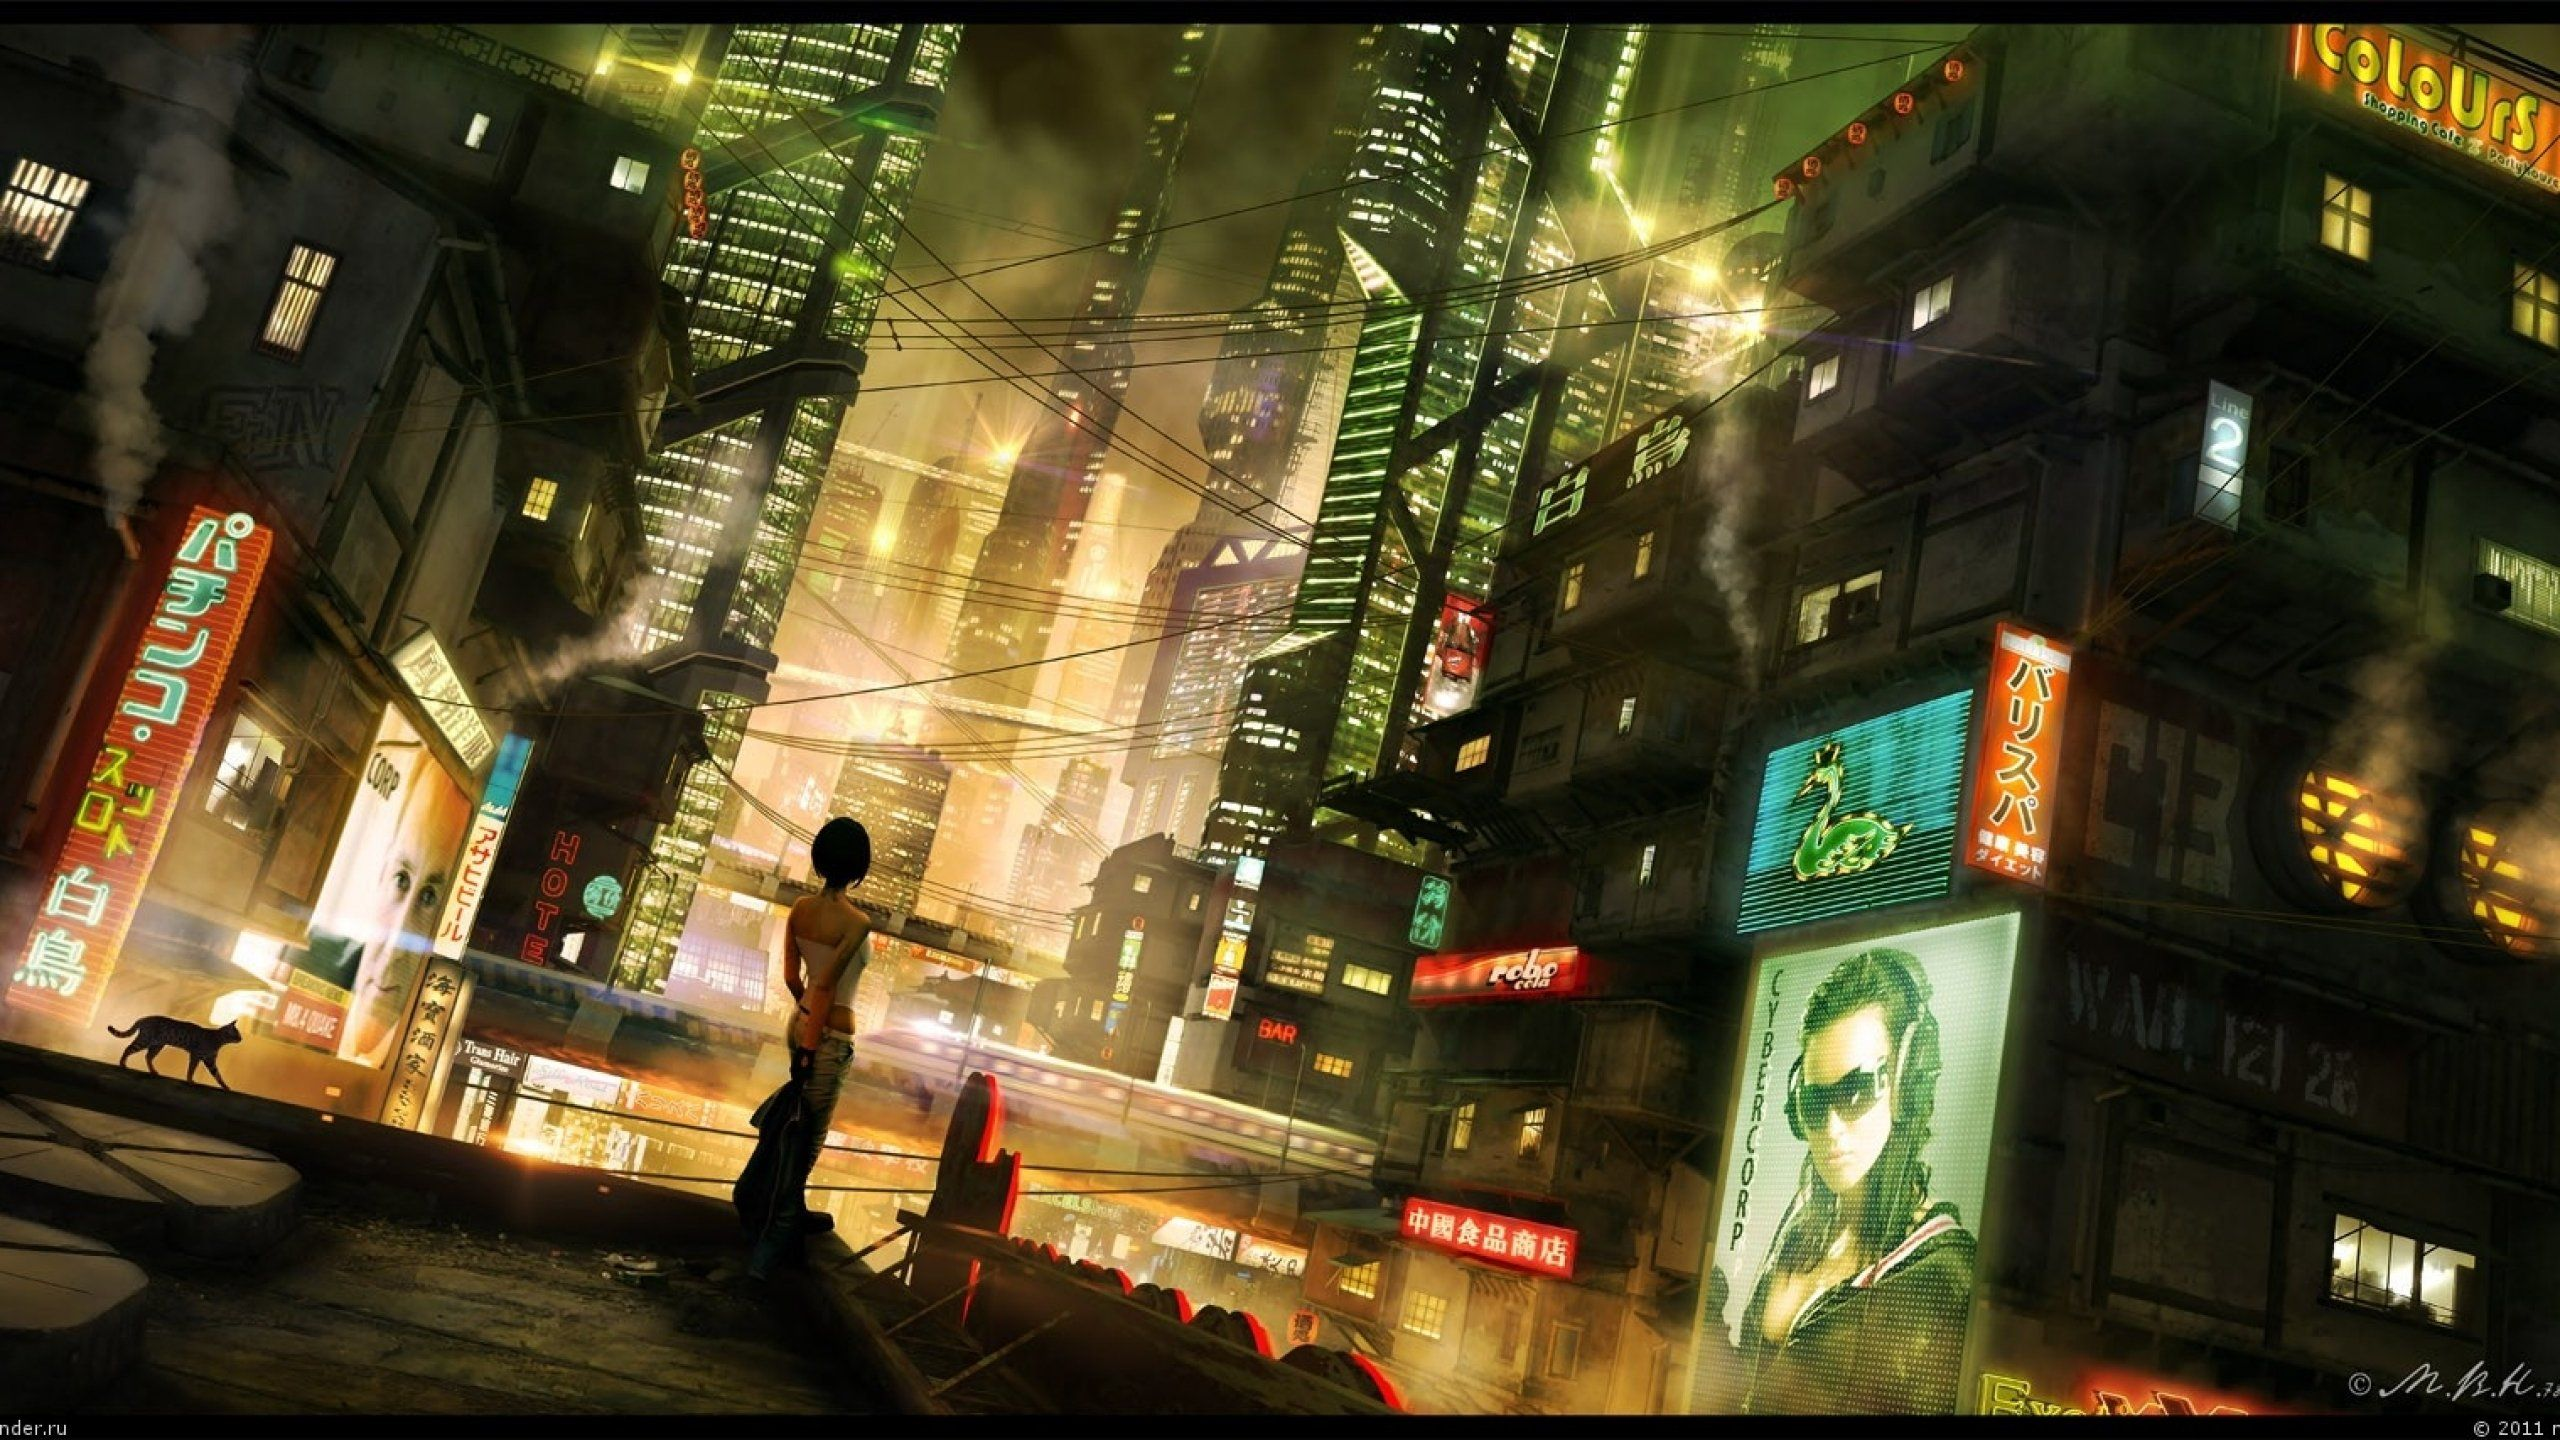 Sci-fi futuristic city cities art artwork wallpaper | 2560x1440 | 658171 | WallpaperUP